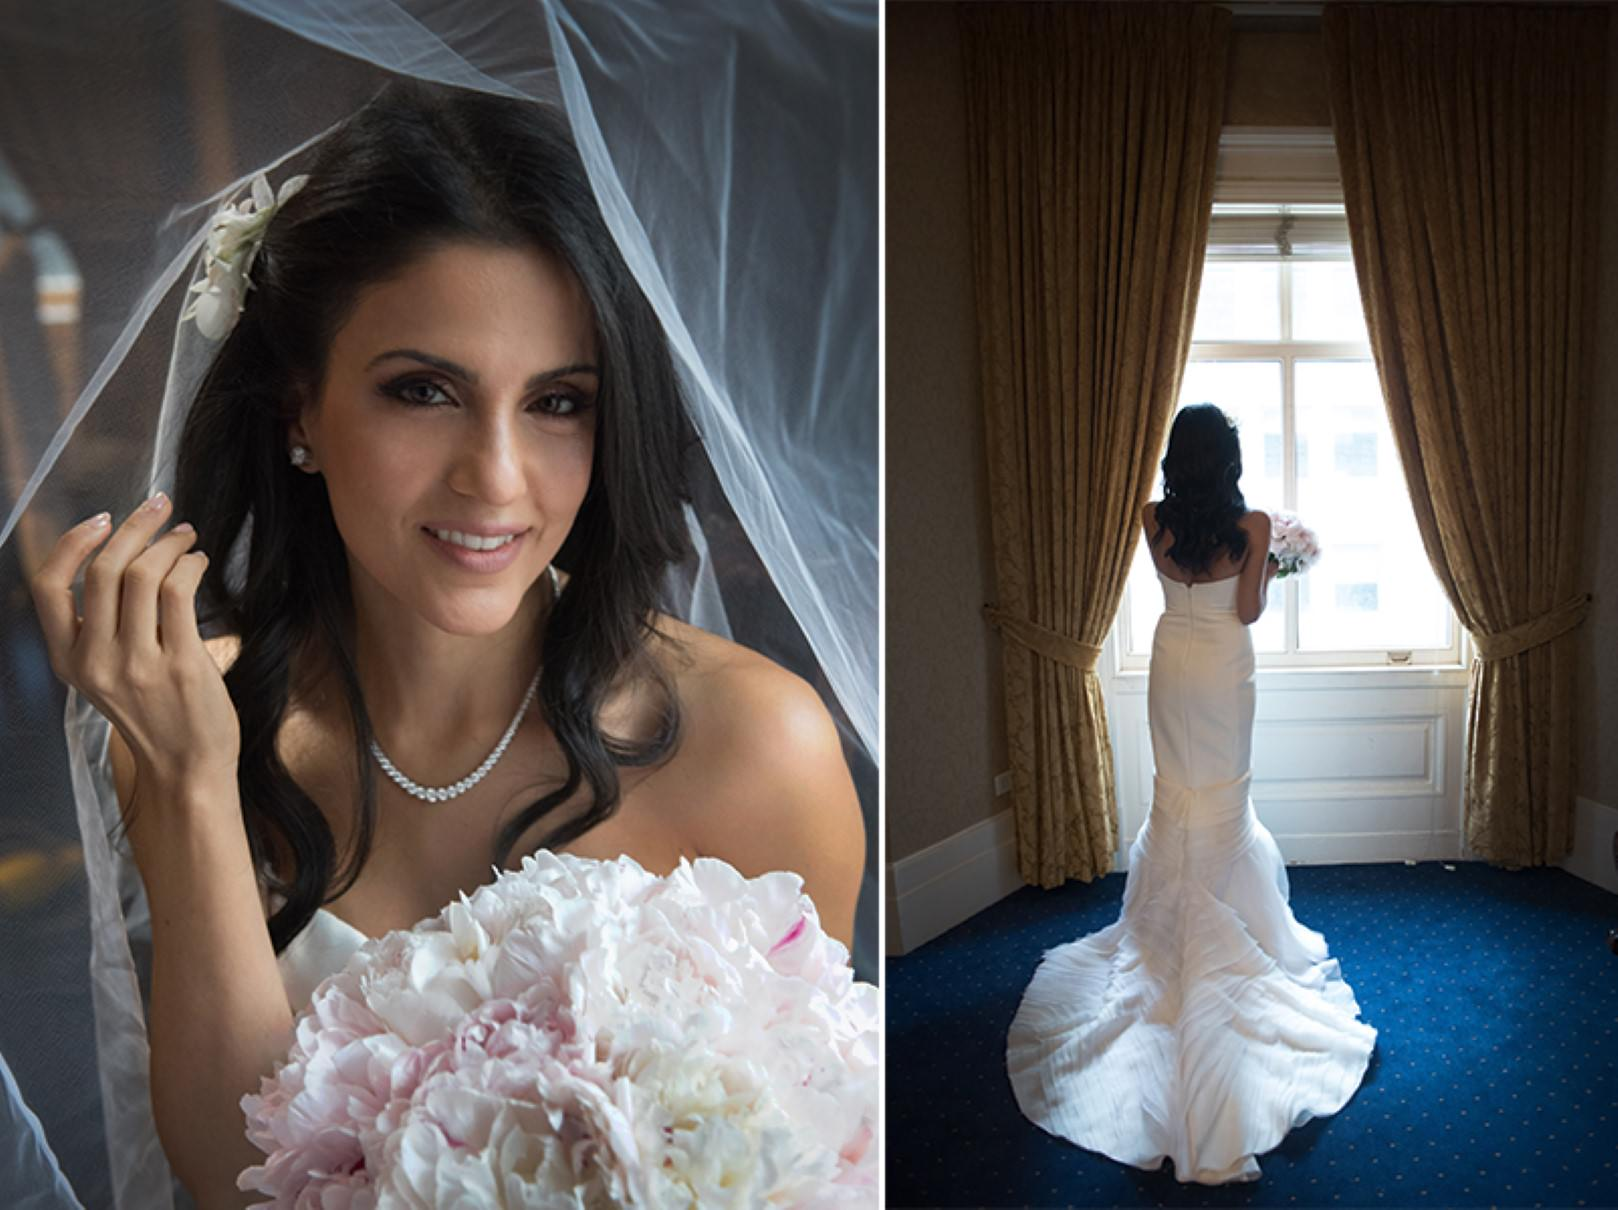 new york city wedding photography photographer photo bride window beautiful portrait artistic veil